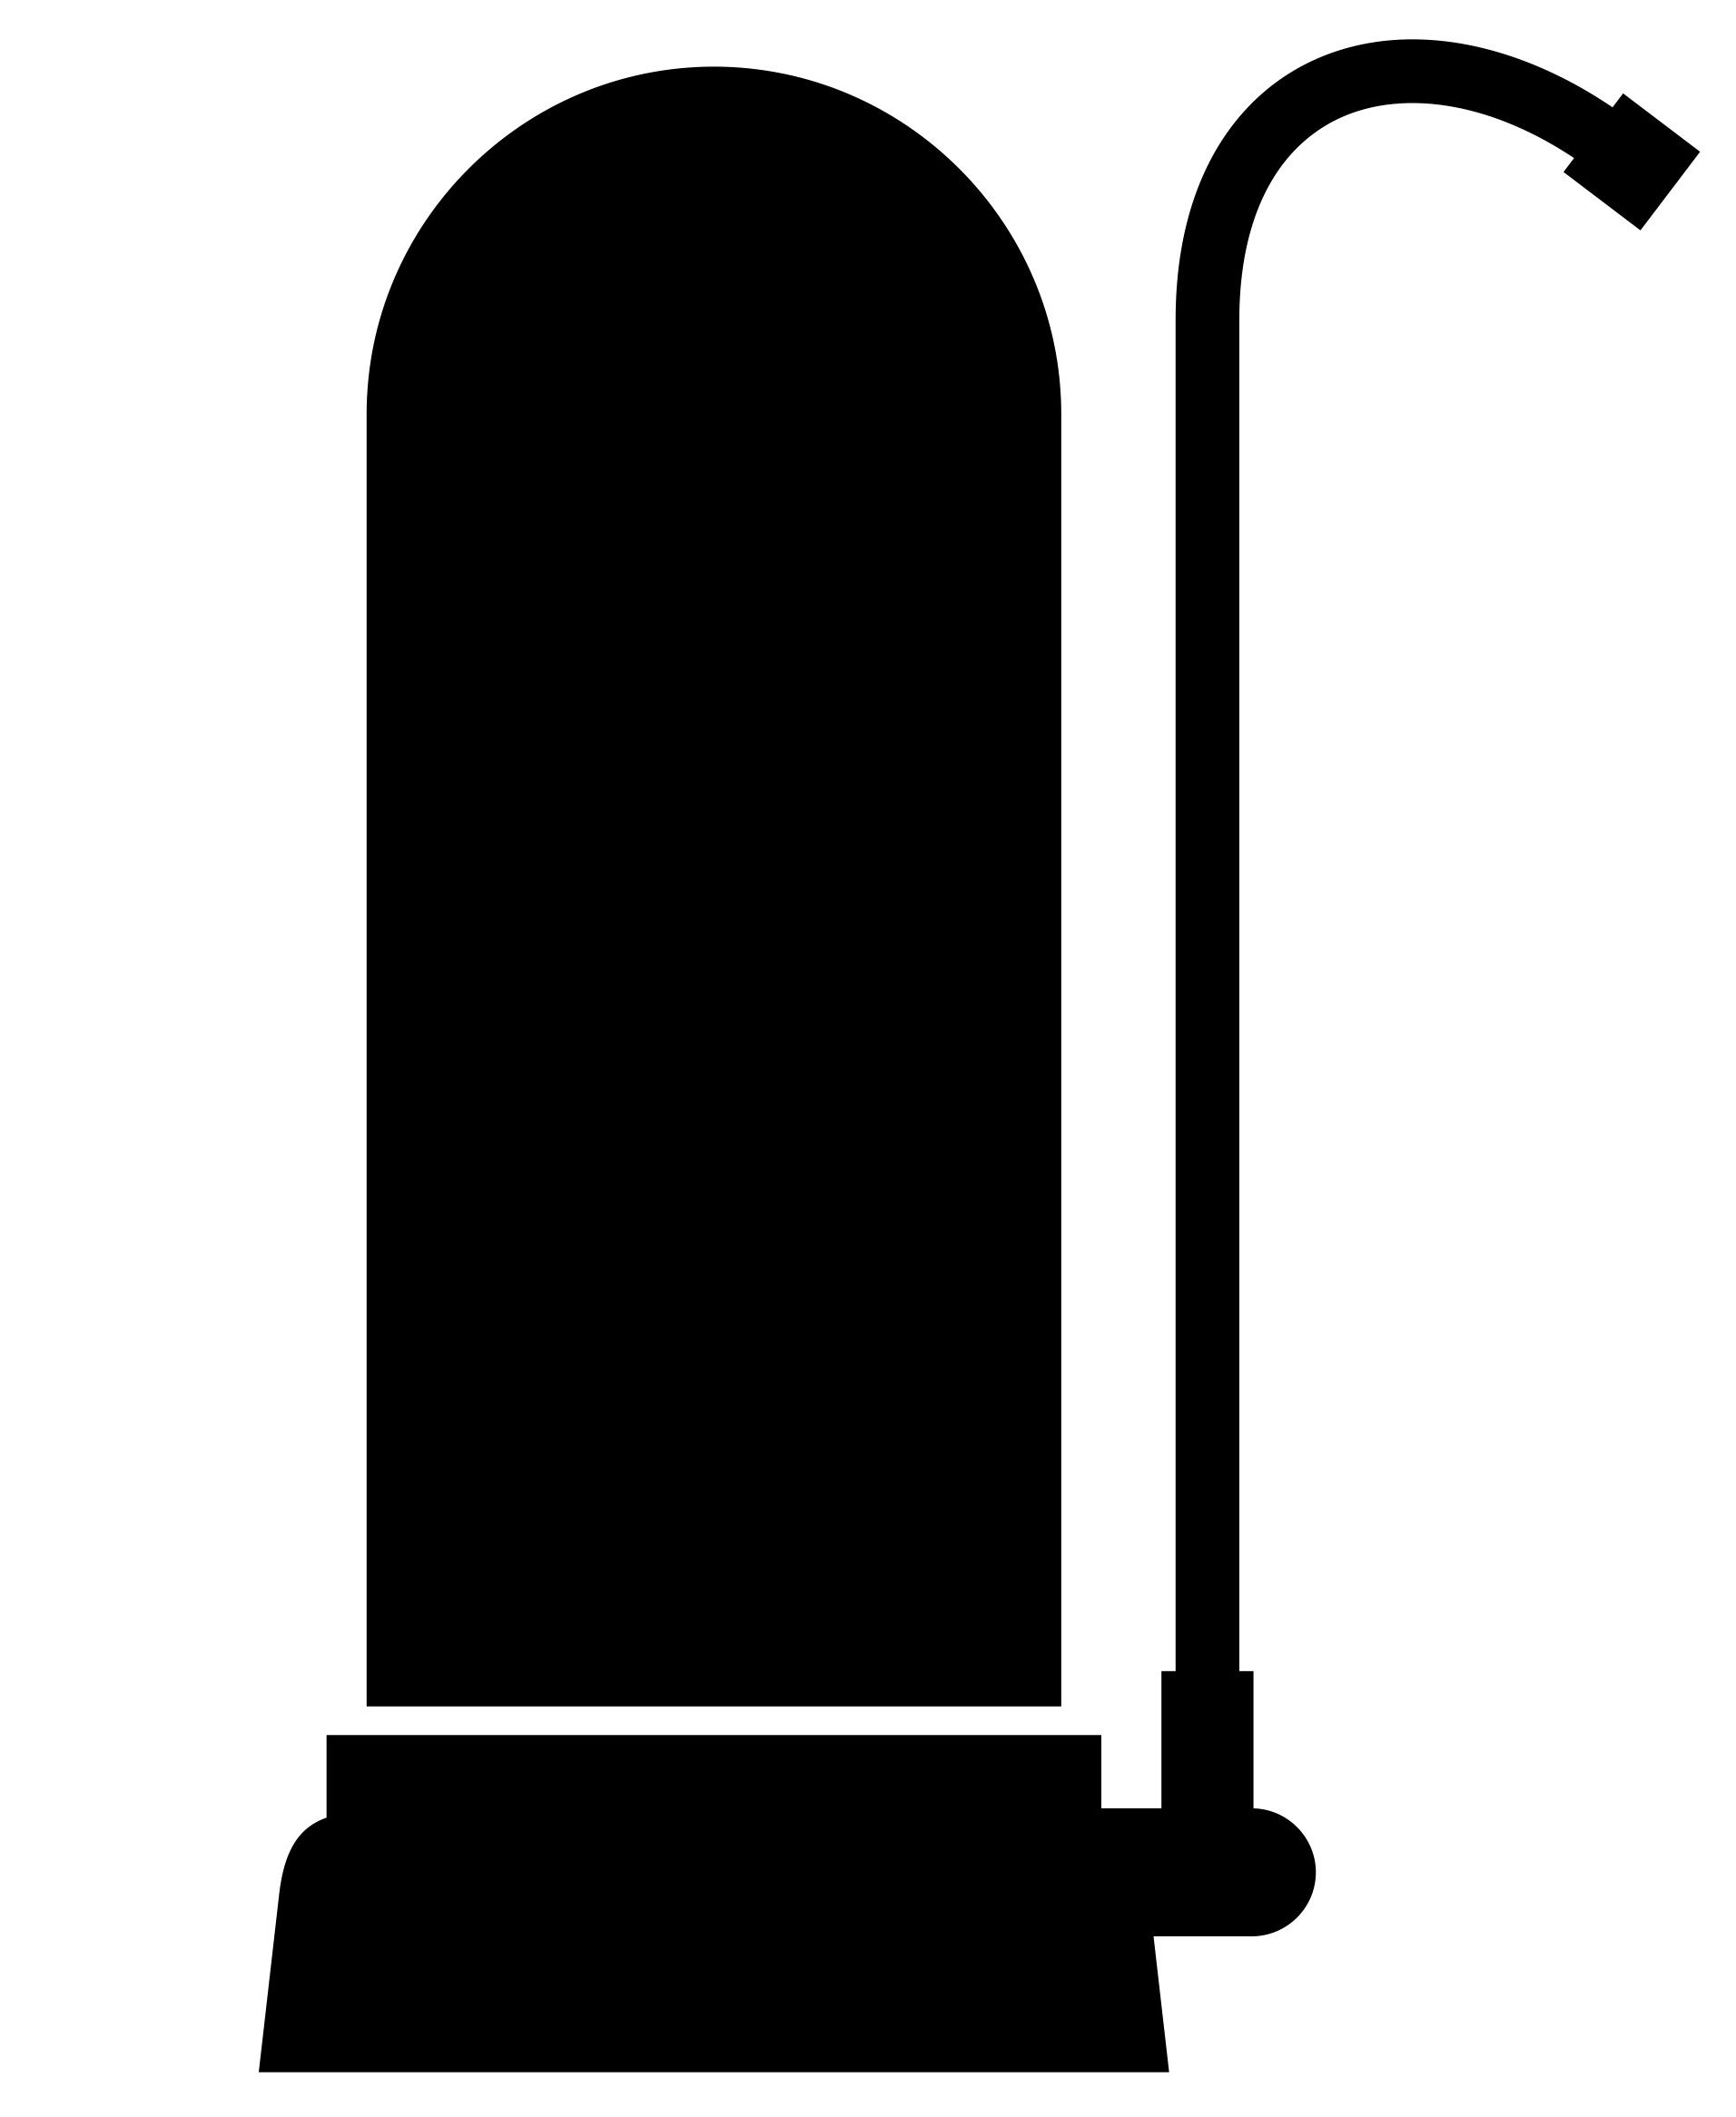 Black and white vector image of a faucet with water filter